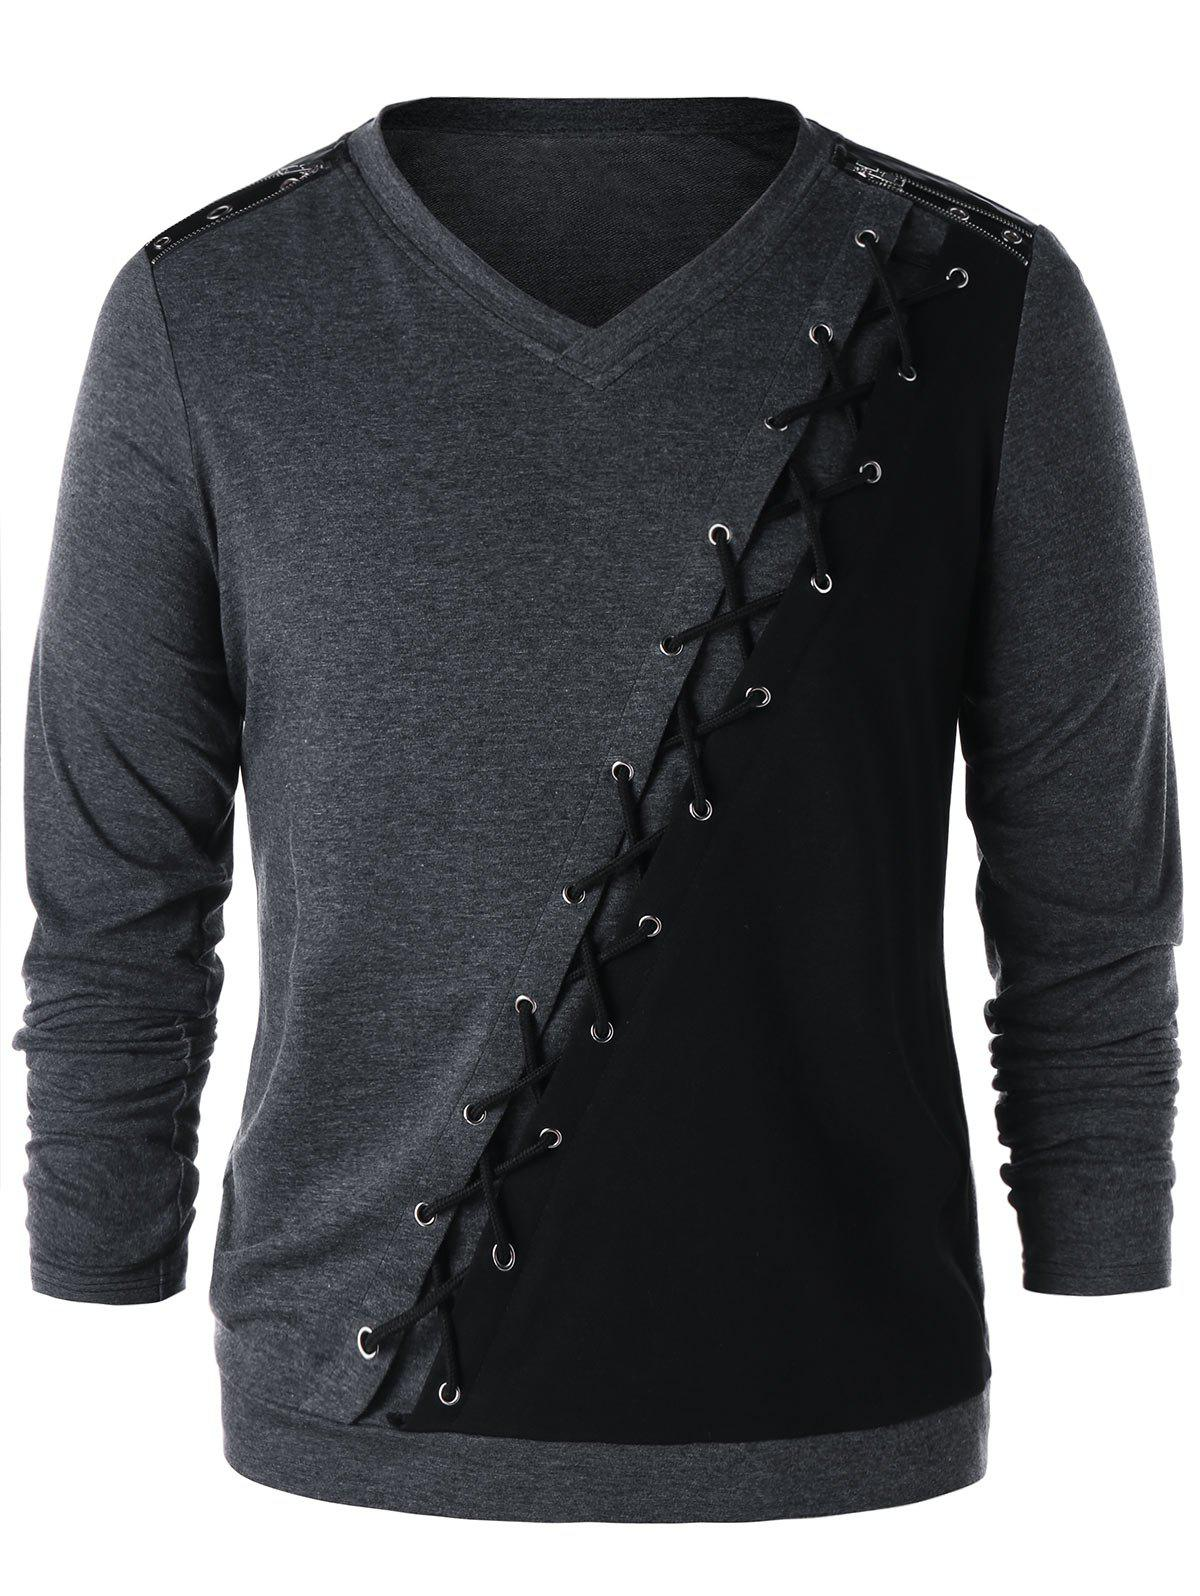 Online Criss Cross Zipper Shoulder Long Sleeve T-shirt